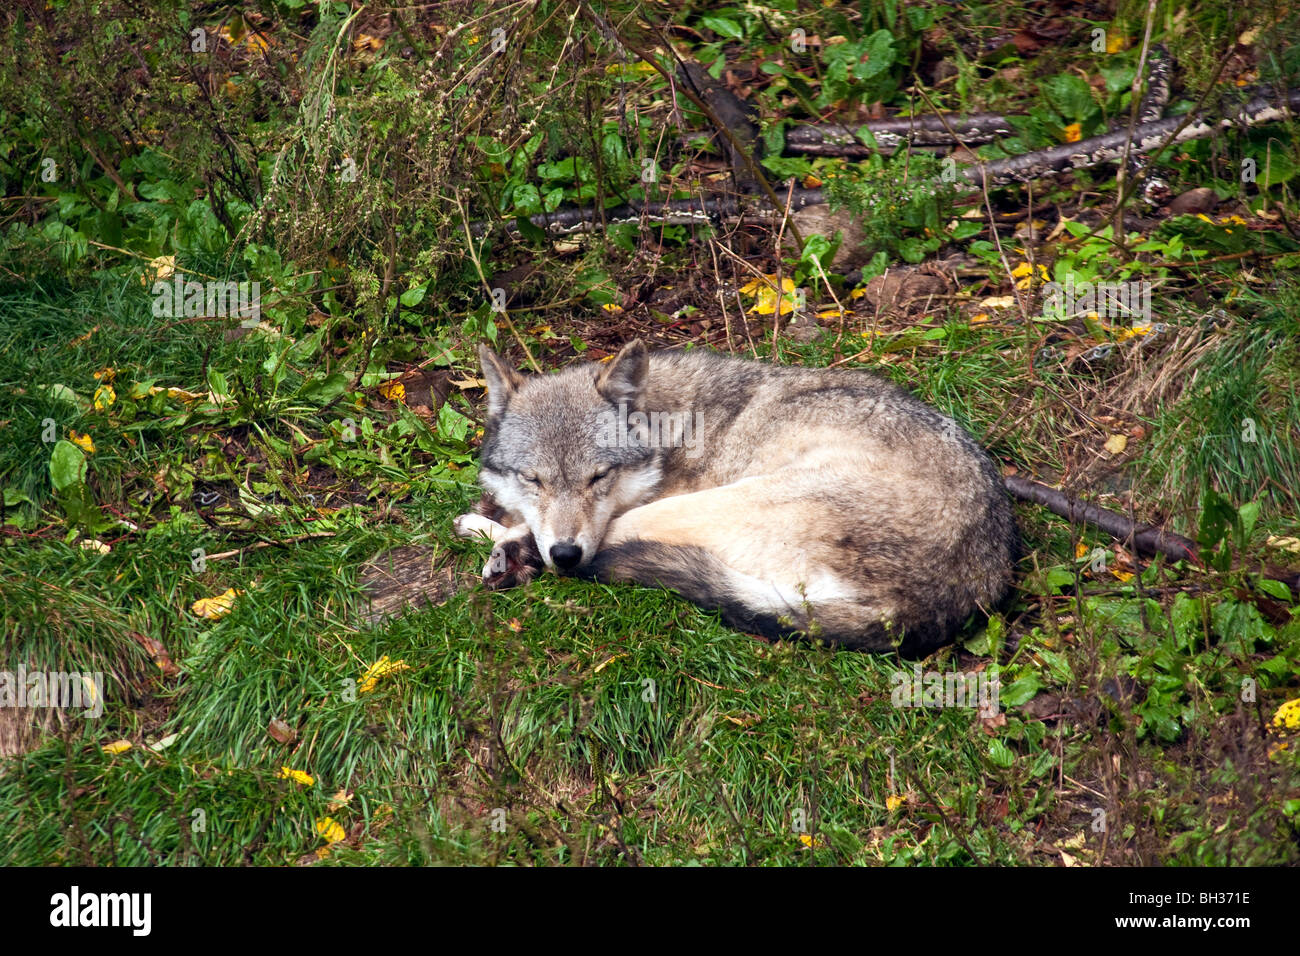 Gray Wolf (Canis Iupus spp.) as seen in the Northern Hemisphere Canada NOrth America - Stock Image